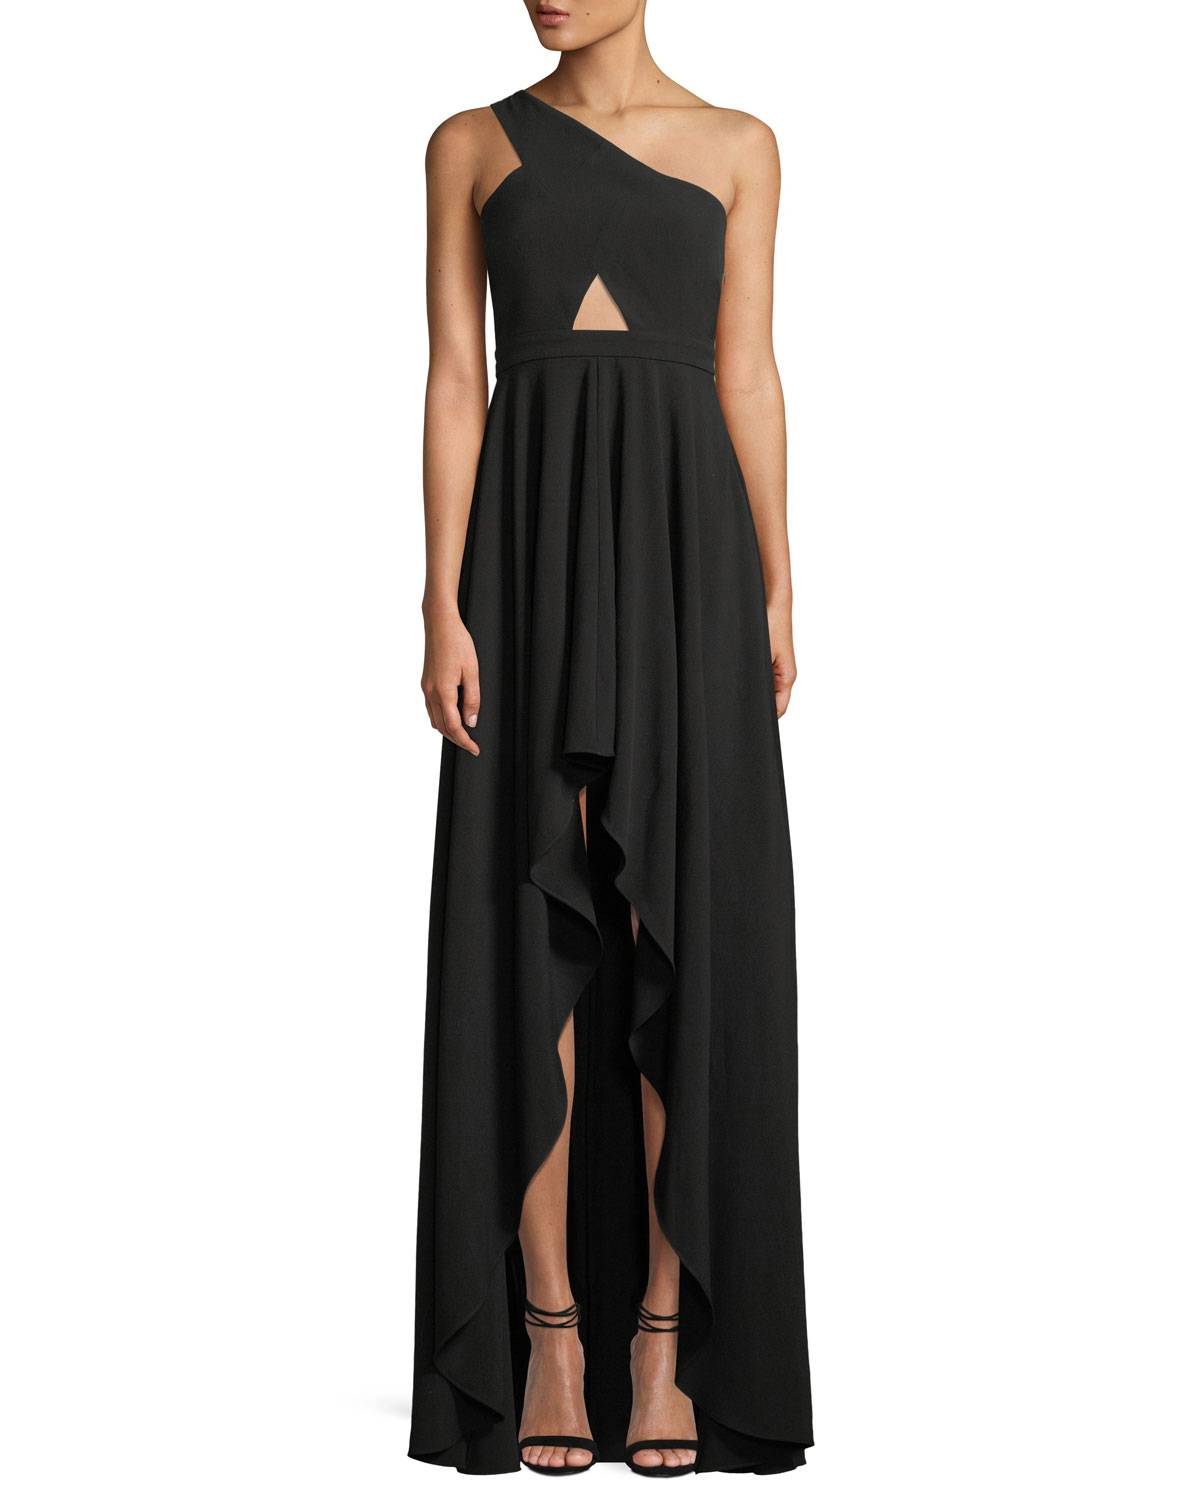 Fame and Partners The Zaylee One-Shoulder Cutout-Waist High-Low Formal Gown Dress